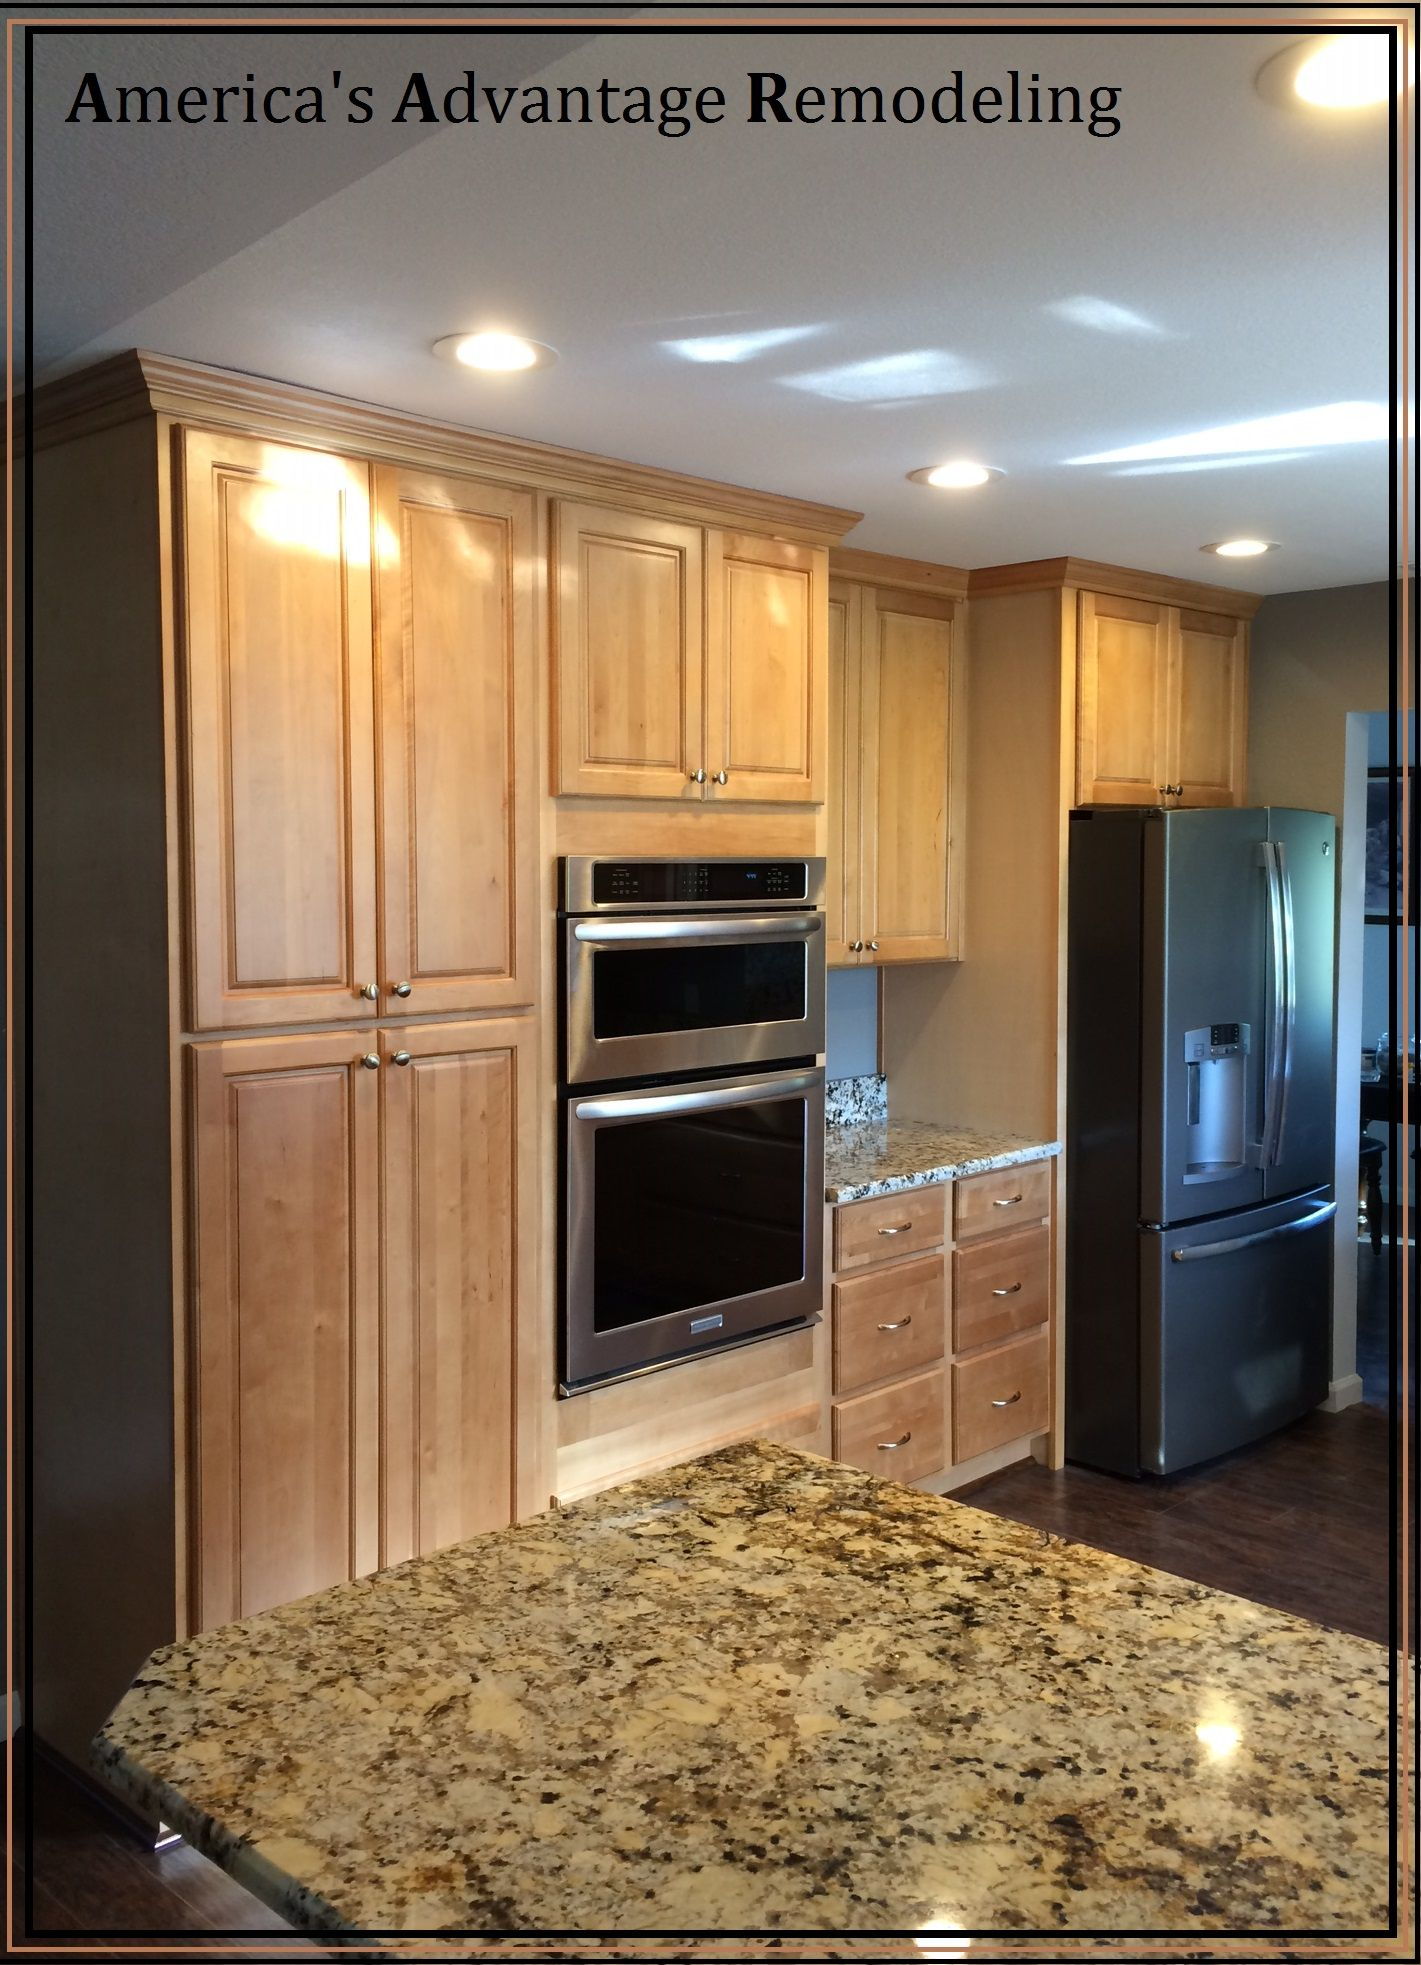 Cabinet Doors Over Your Fridge To Have A Complete Set Of Kitchen Cabinets New Granite Countertops Beautiful Kitchens Kitchen Cabinets New Countertops